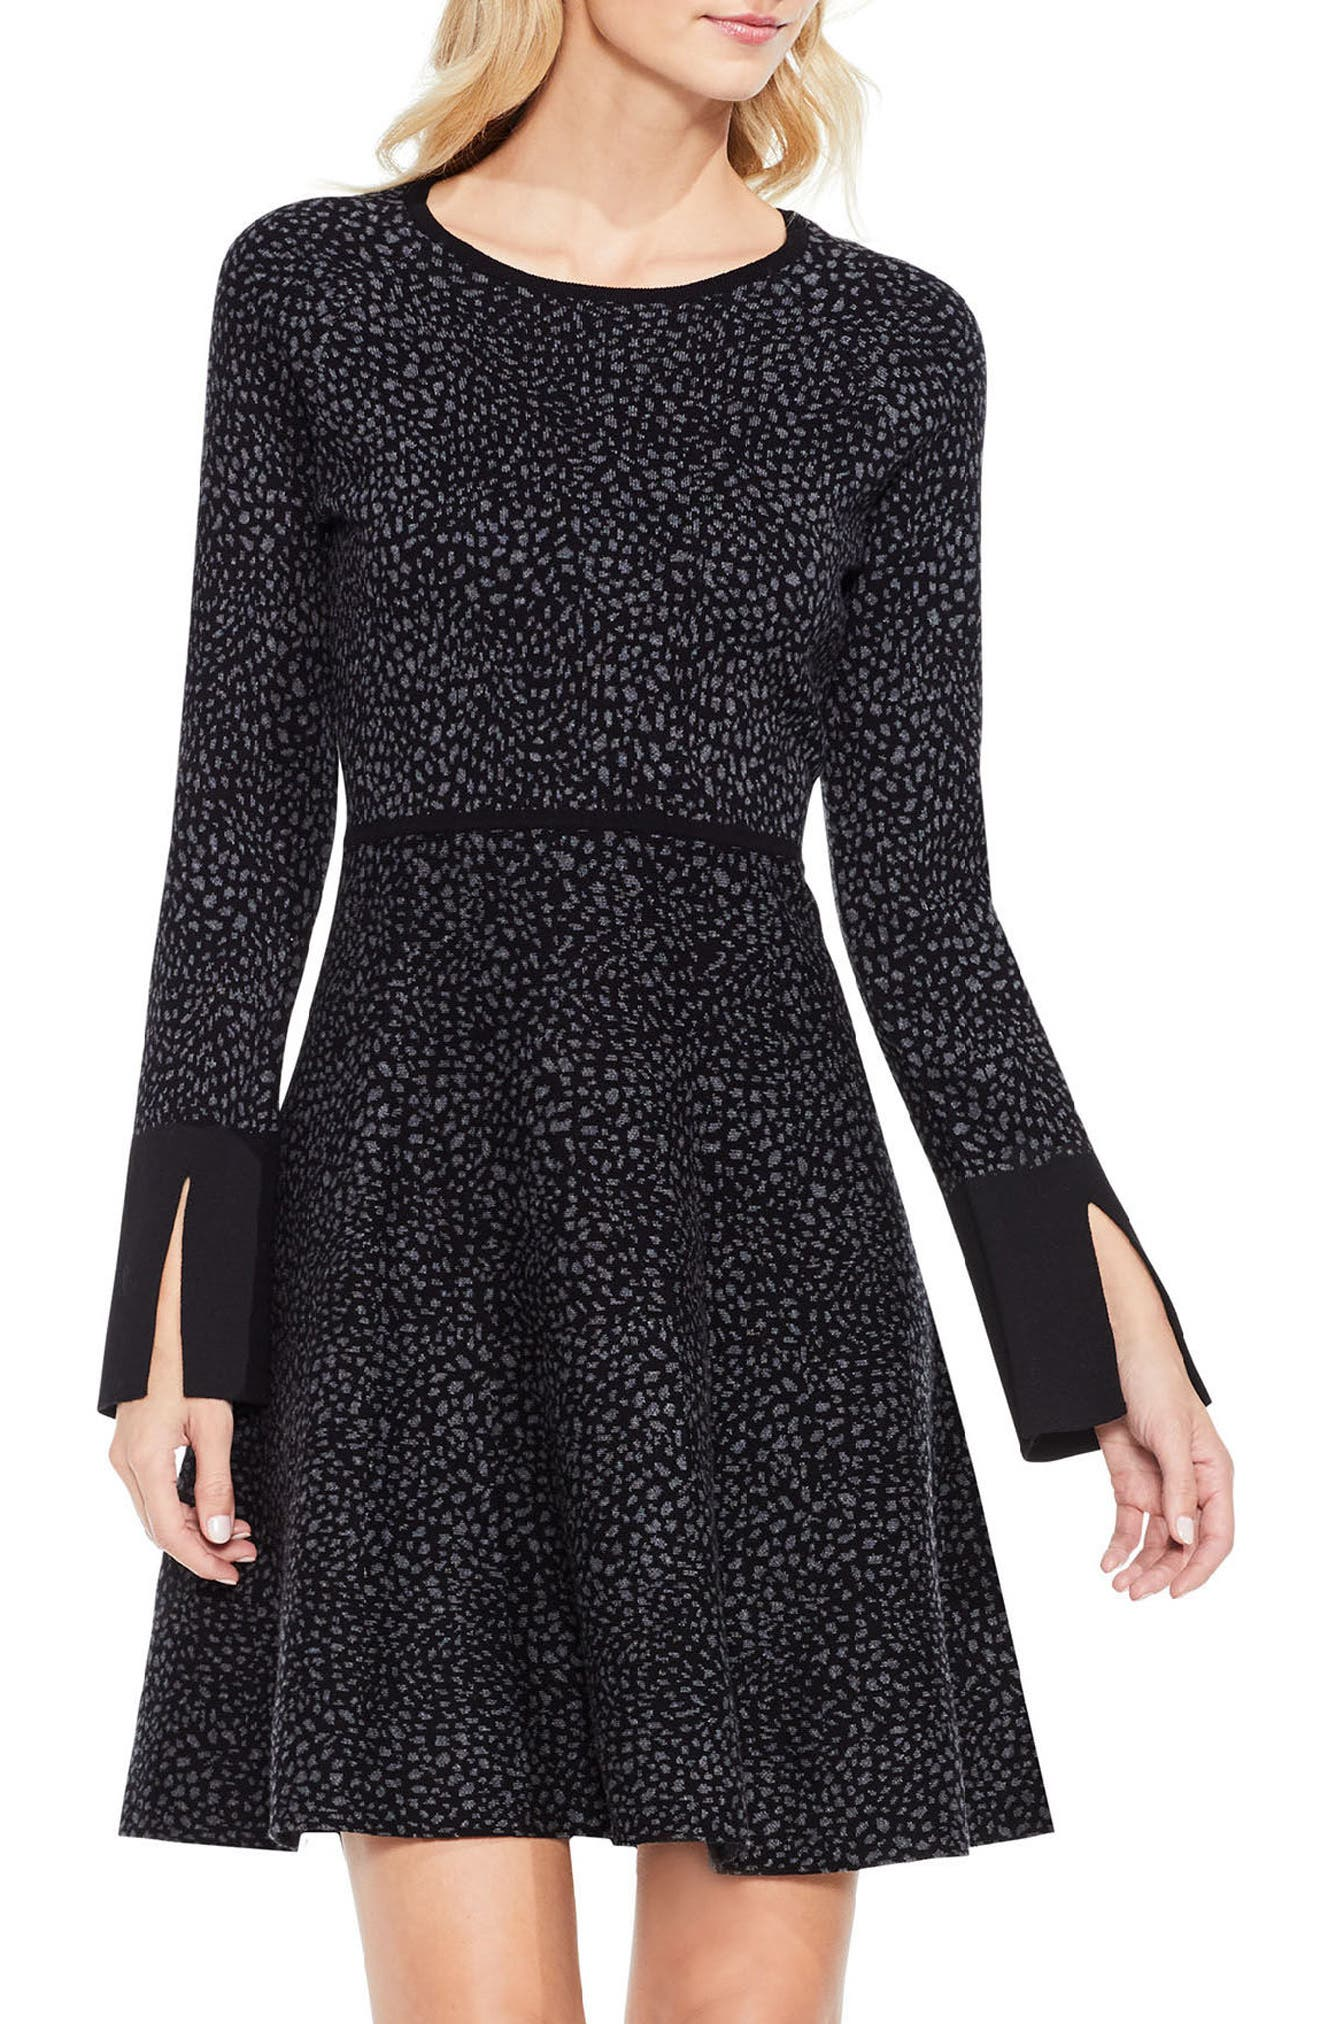 Main Image - Vince Camuto Jacquard Fit & Flare Dress